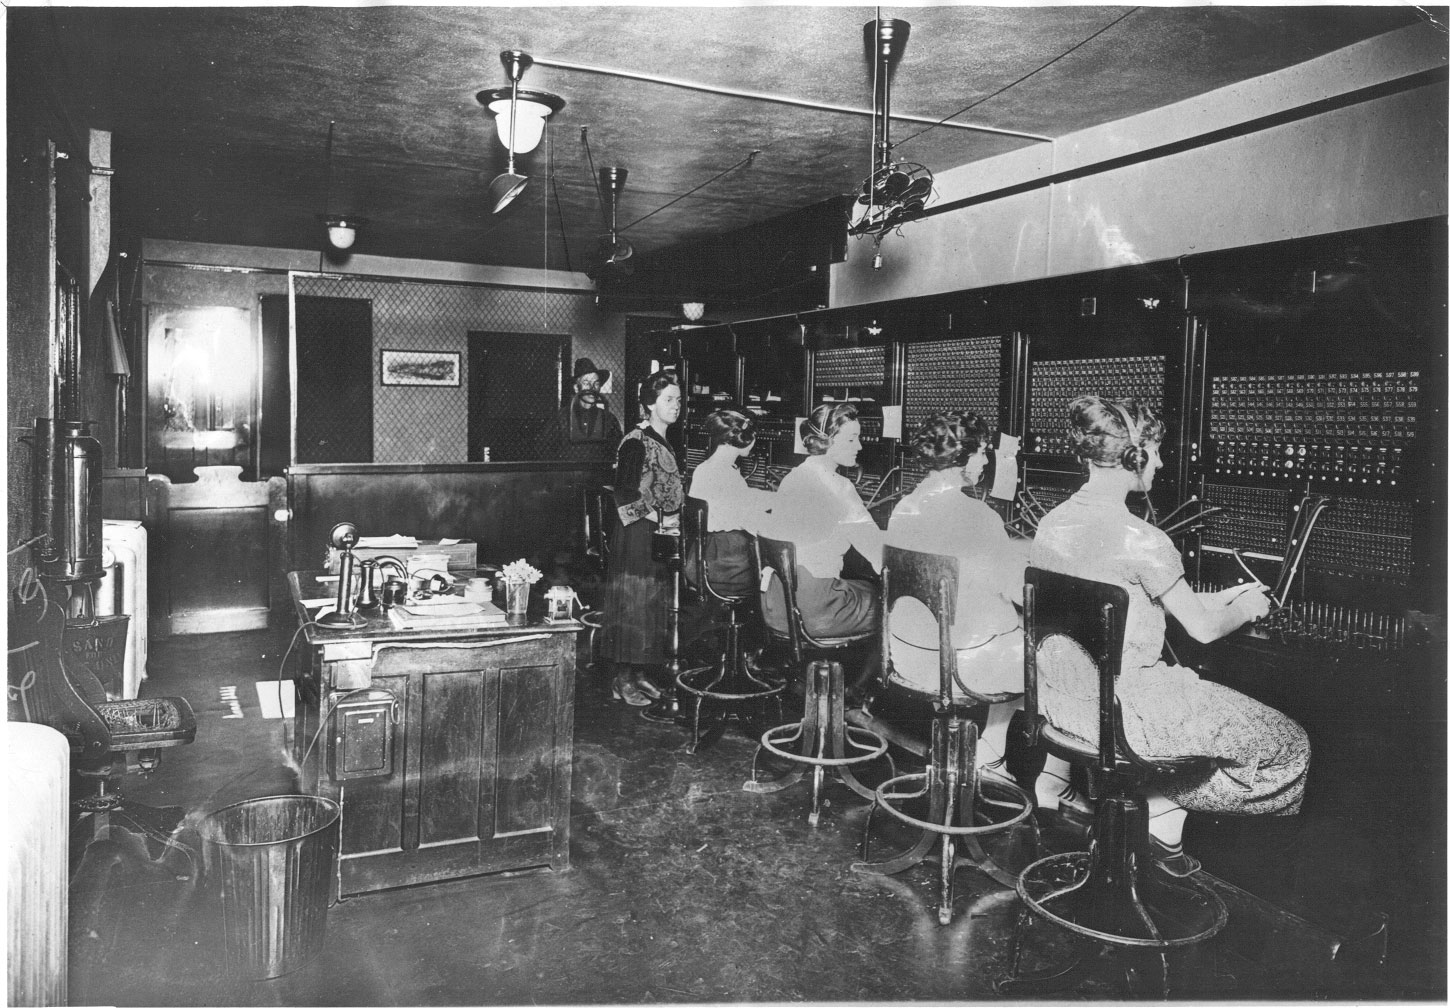 Telephone-operators-in-New-Mexico-Source-telcomhistory.org_